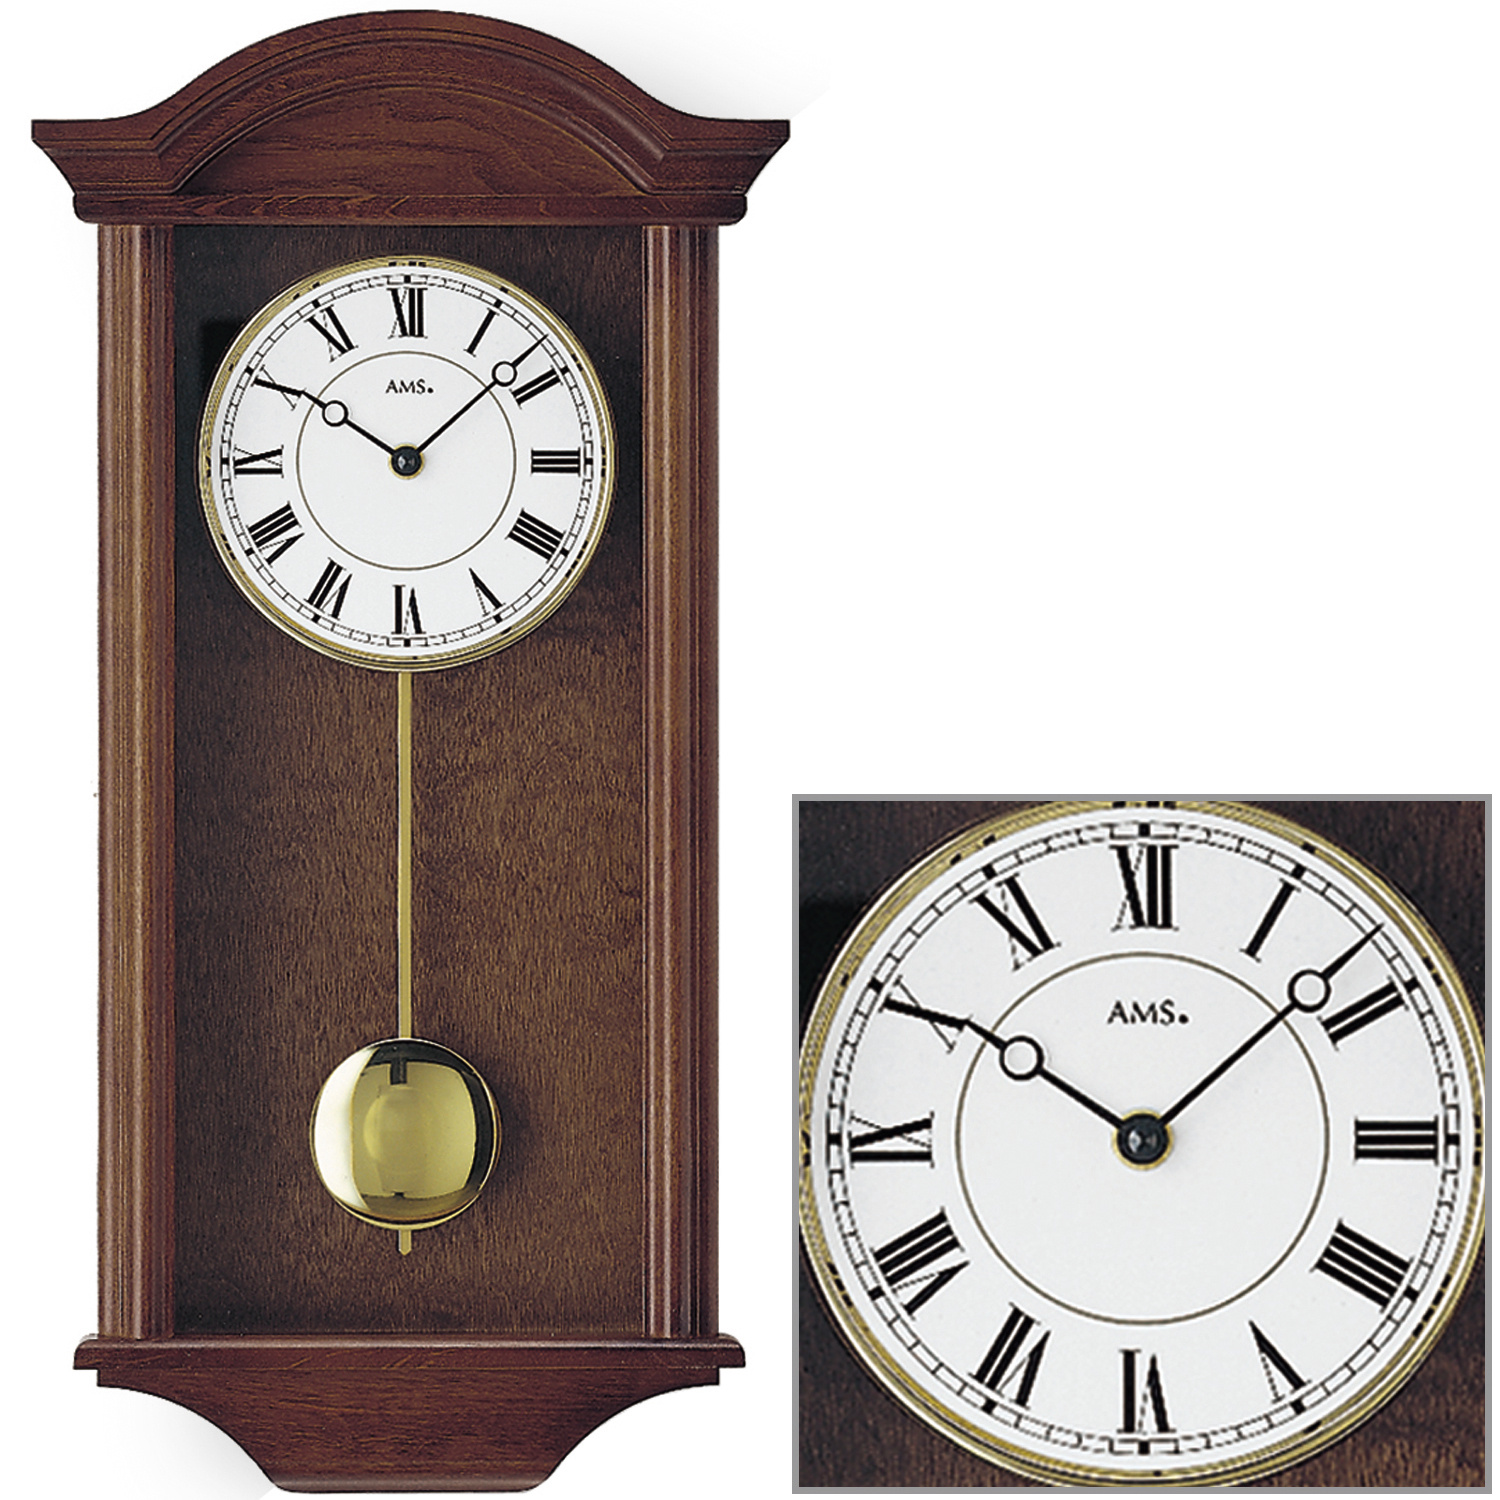 ams 990 1 horloge murale pendule quartz bois massif du salon 4 4 westminster ebay. Black Bedroom Furniture Sets. Home Design Ideas